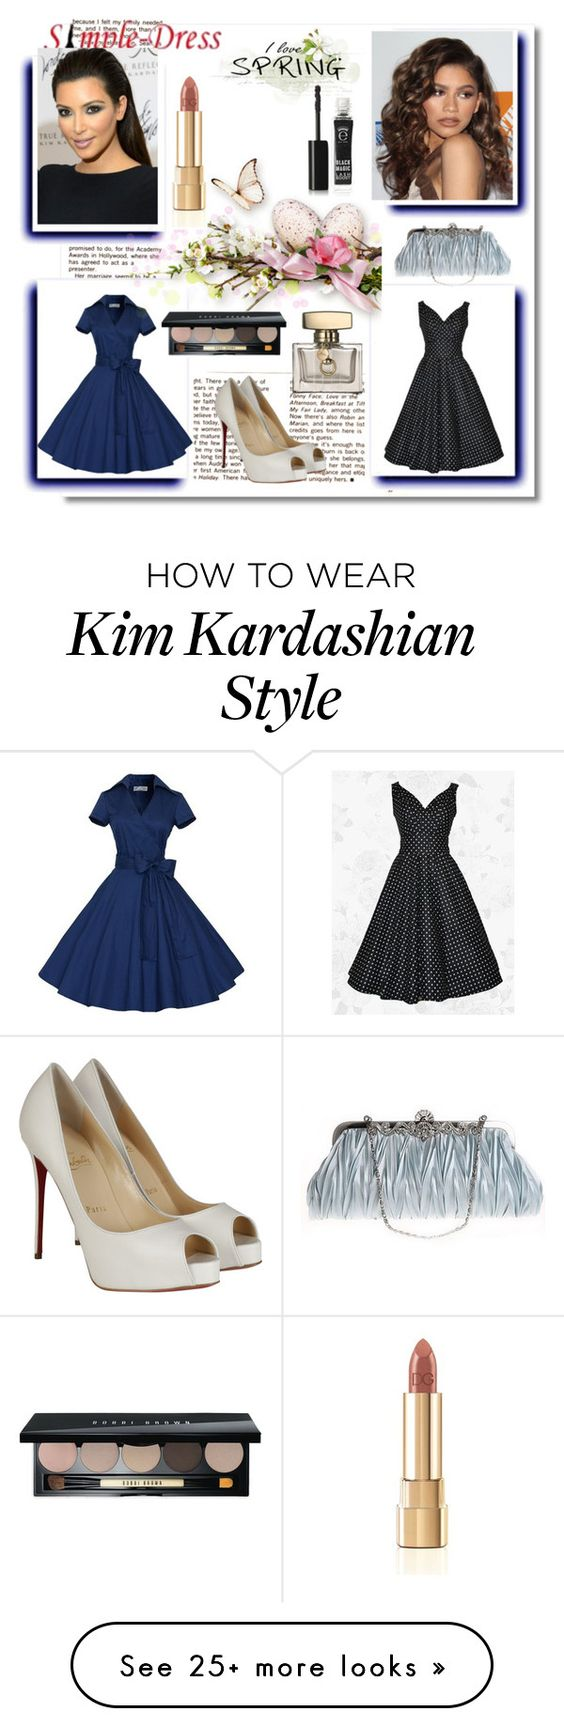 """Simpledress 27"" by zijadaahmetovic on Polyvore featuring Coleman, Christian Louboutin, Gucci, Eyeko, Dolce&Gabbana, Bobbi Brown Cosmetics, vintage and simpledress"